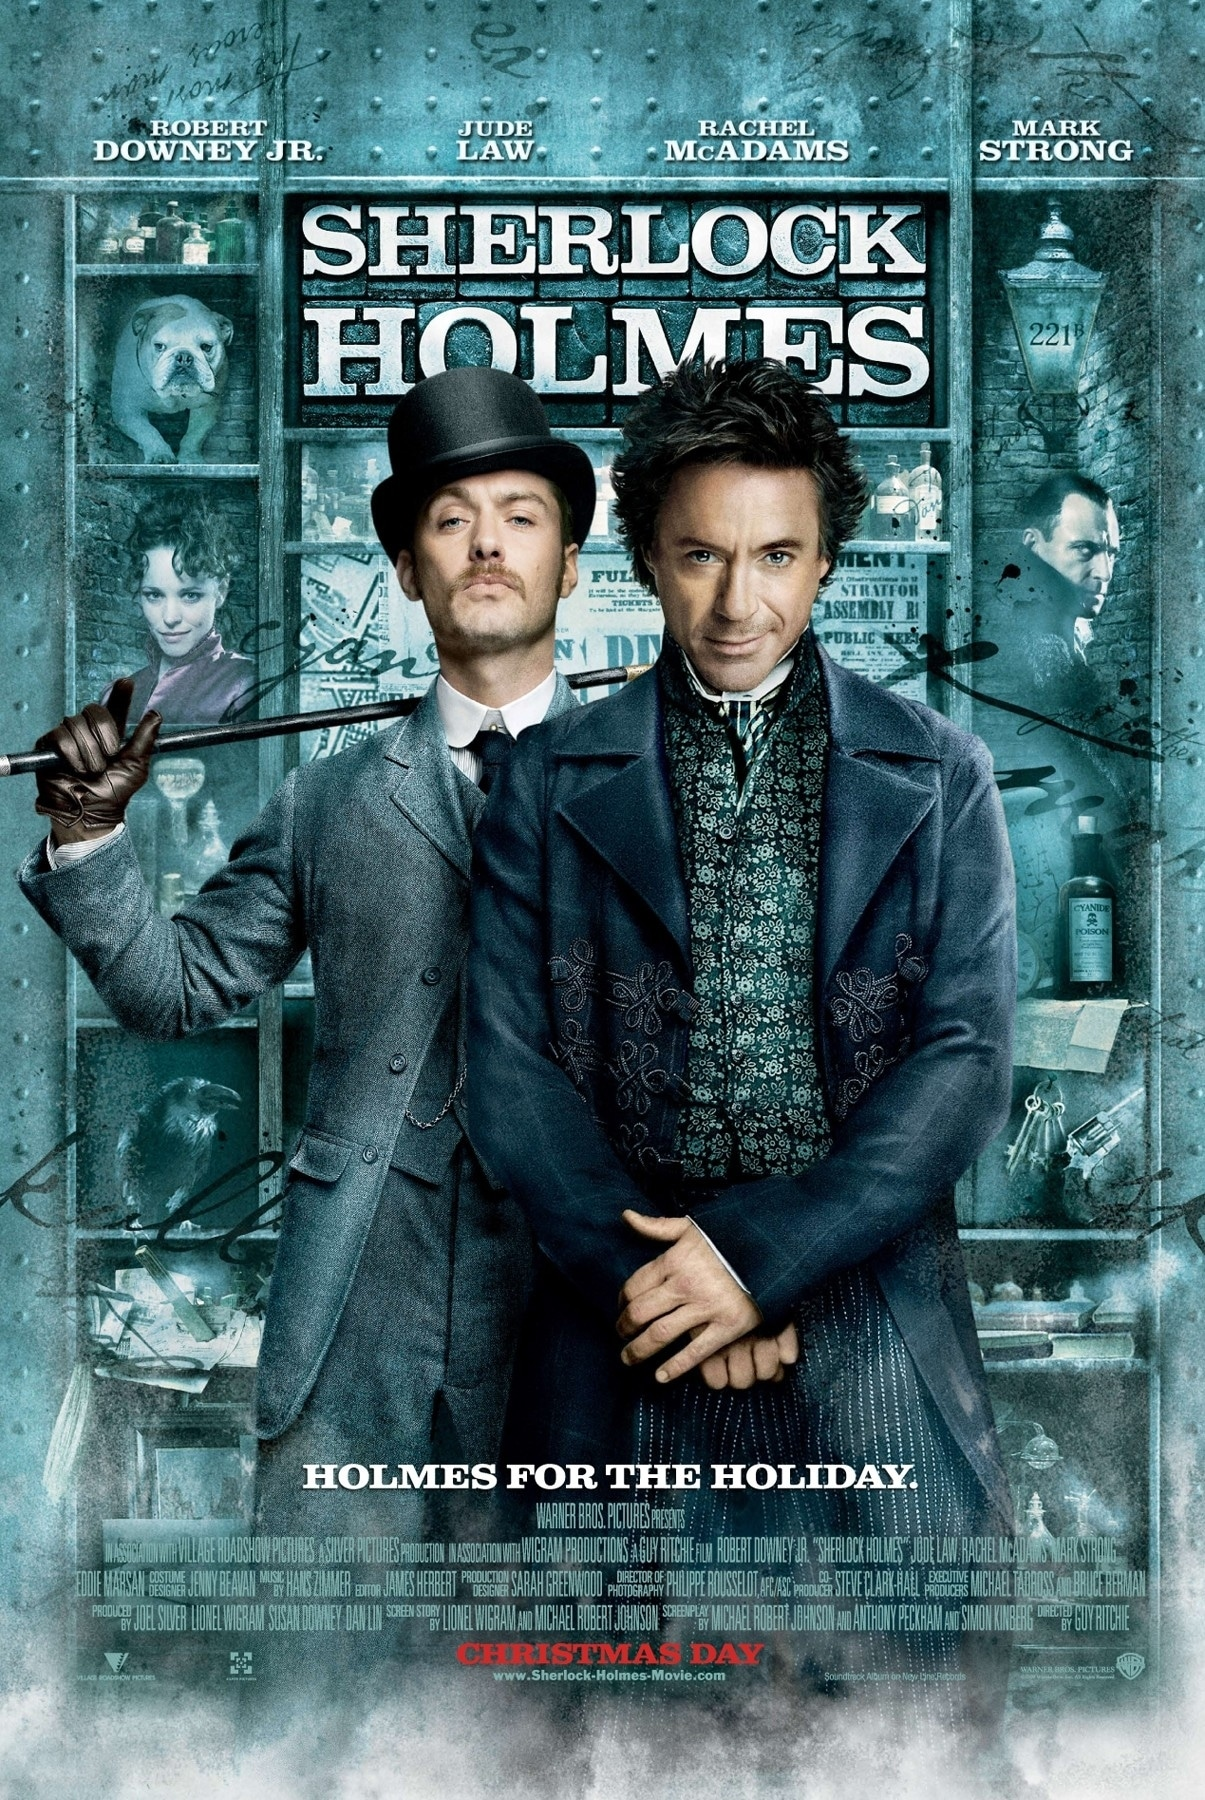 Robert Downey Jr. Wants to Turn Sherlock Holmes Movies into Marvel-Style Cinematic Universe